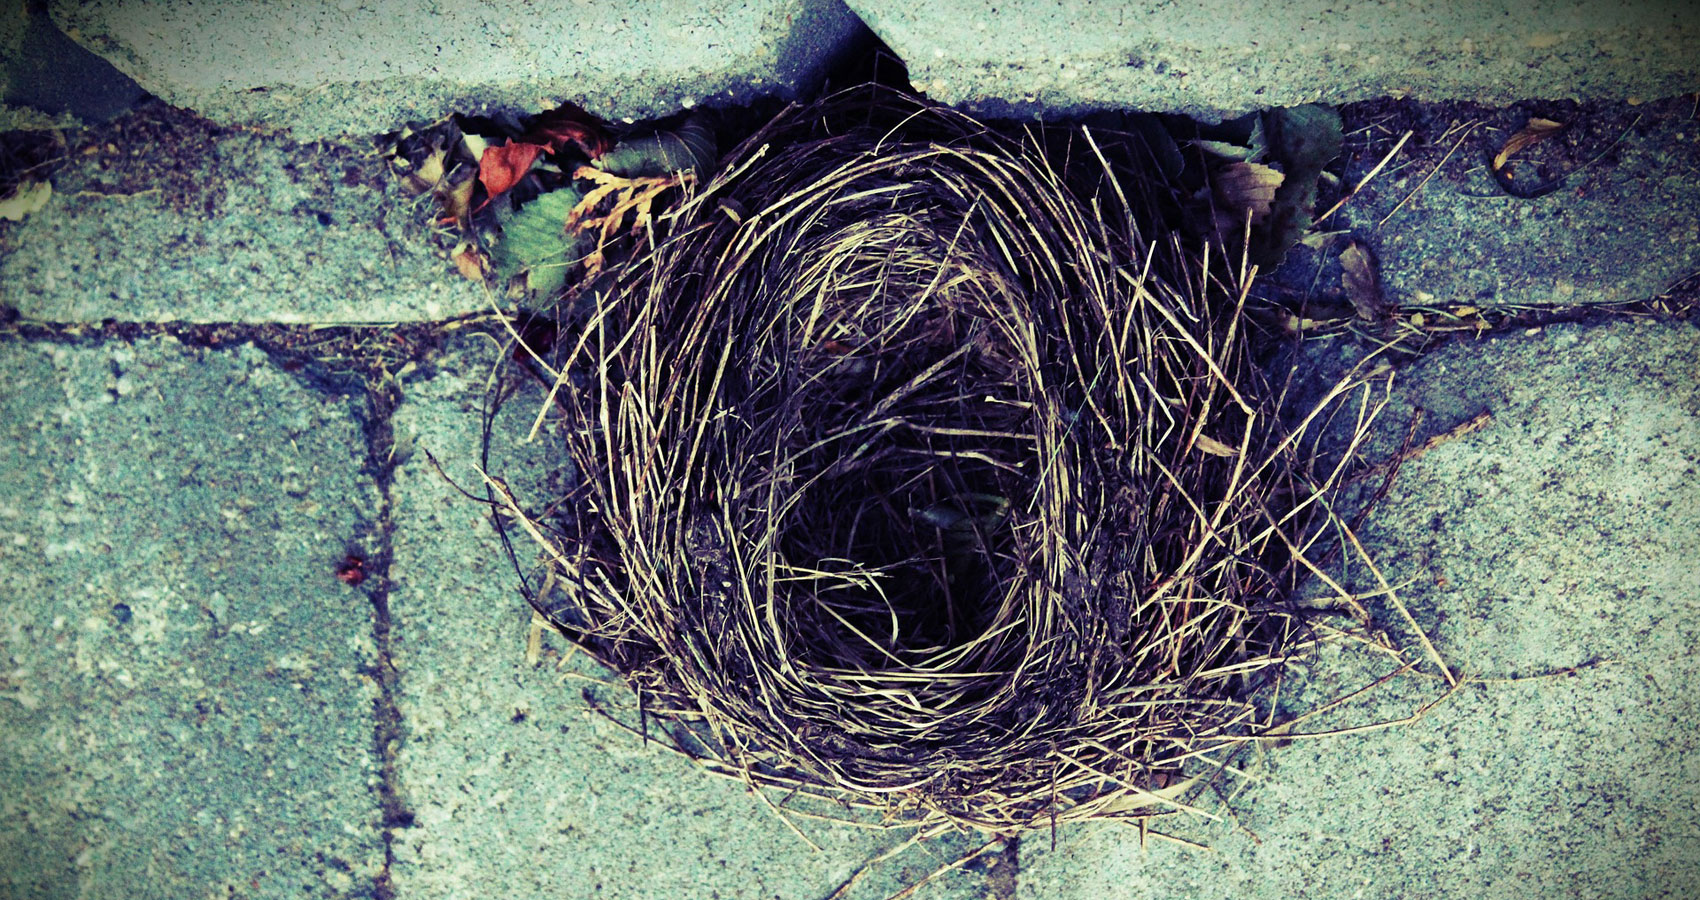 Nest written by RhymeRula at Spillwords.com